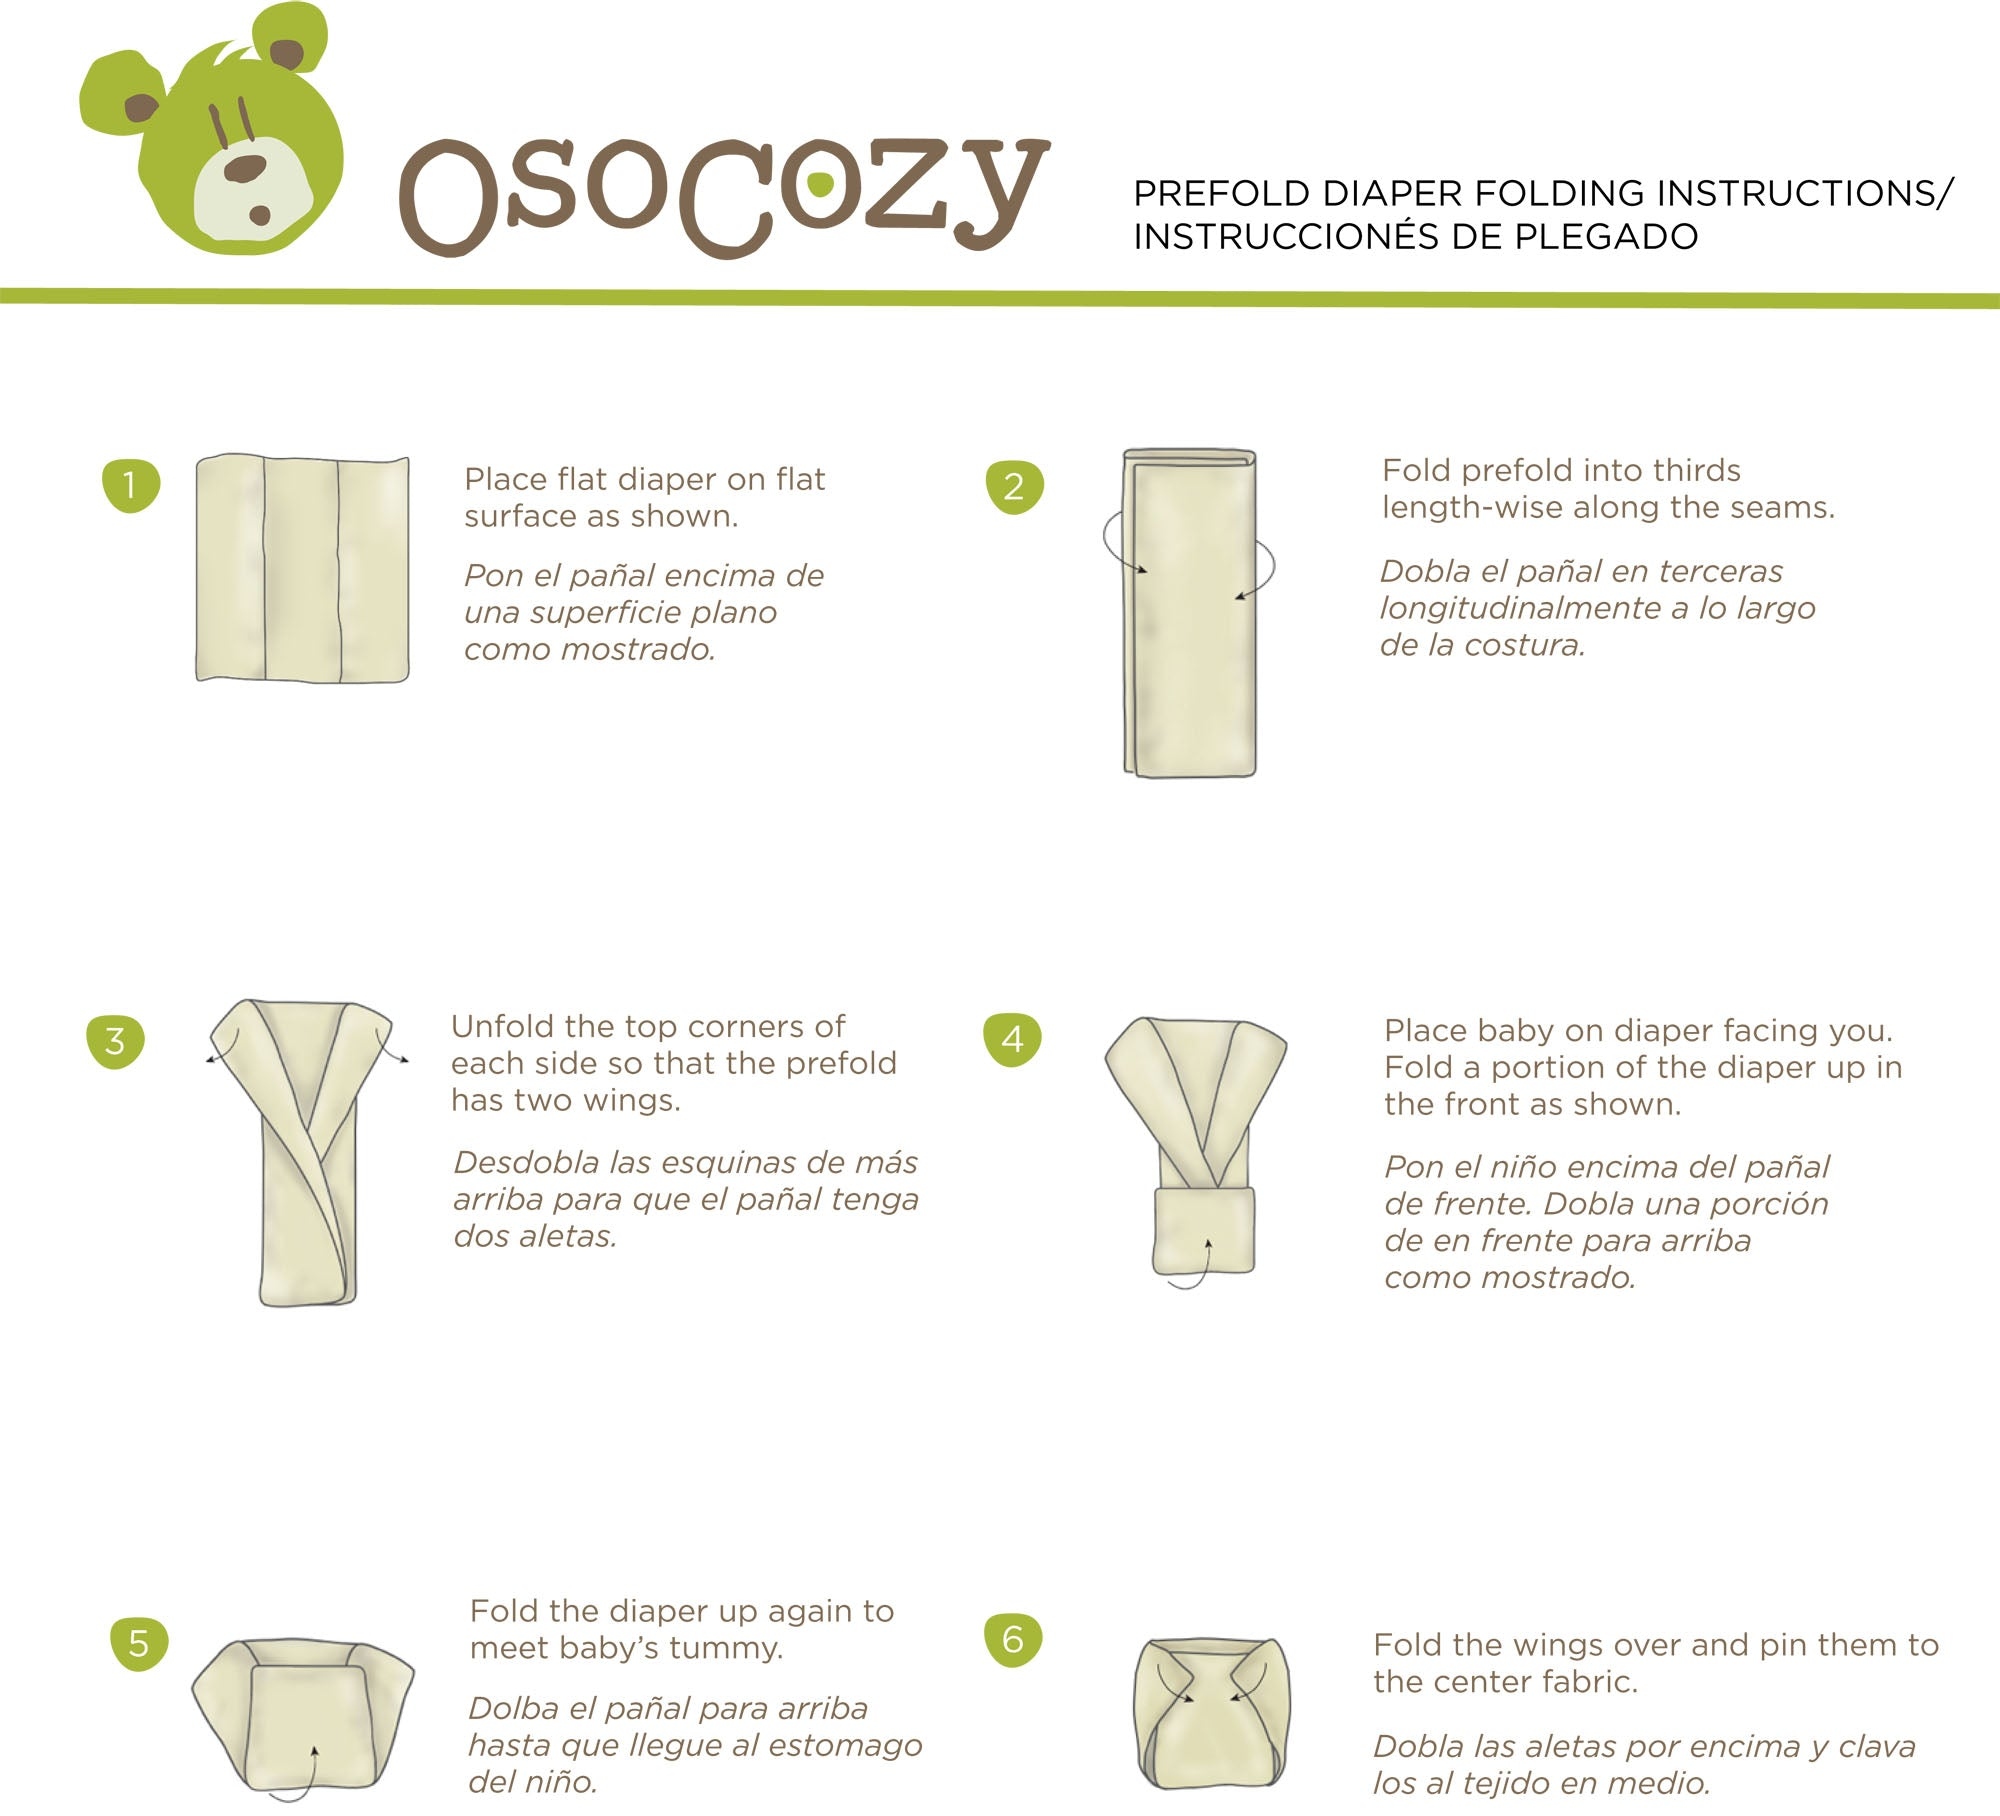 Prefold cloth diaper folding instructions.